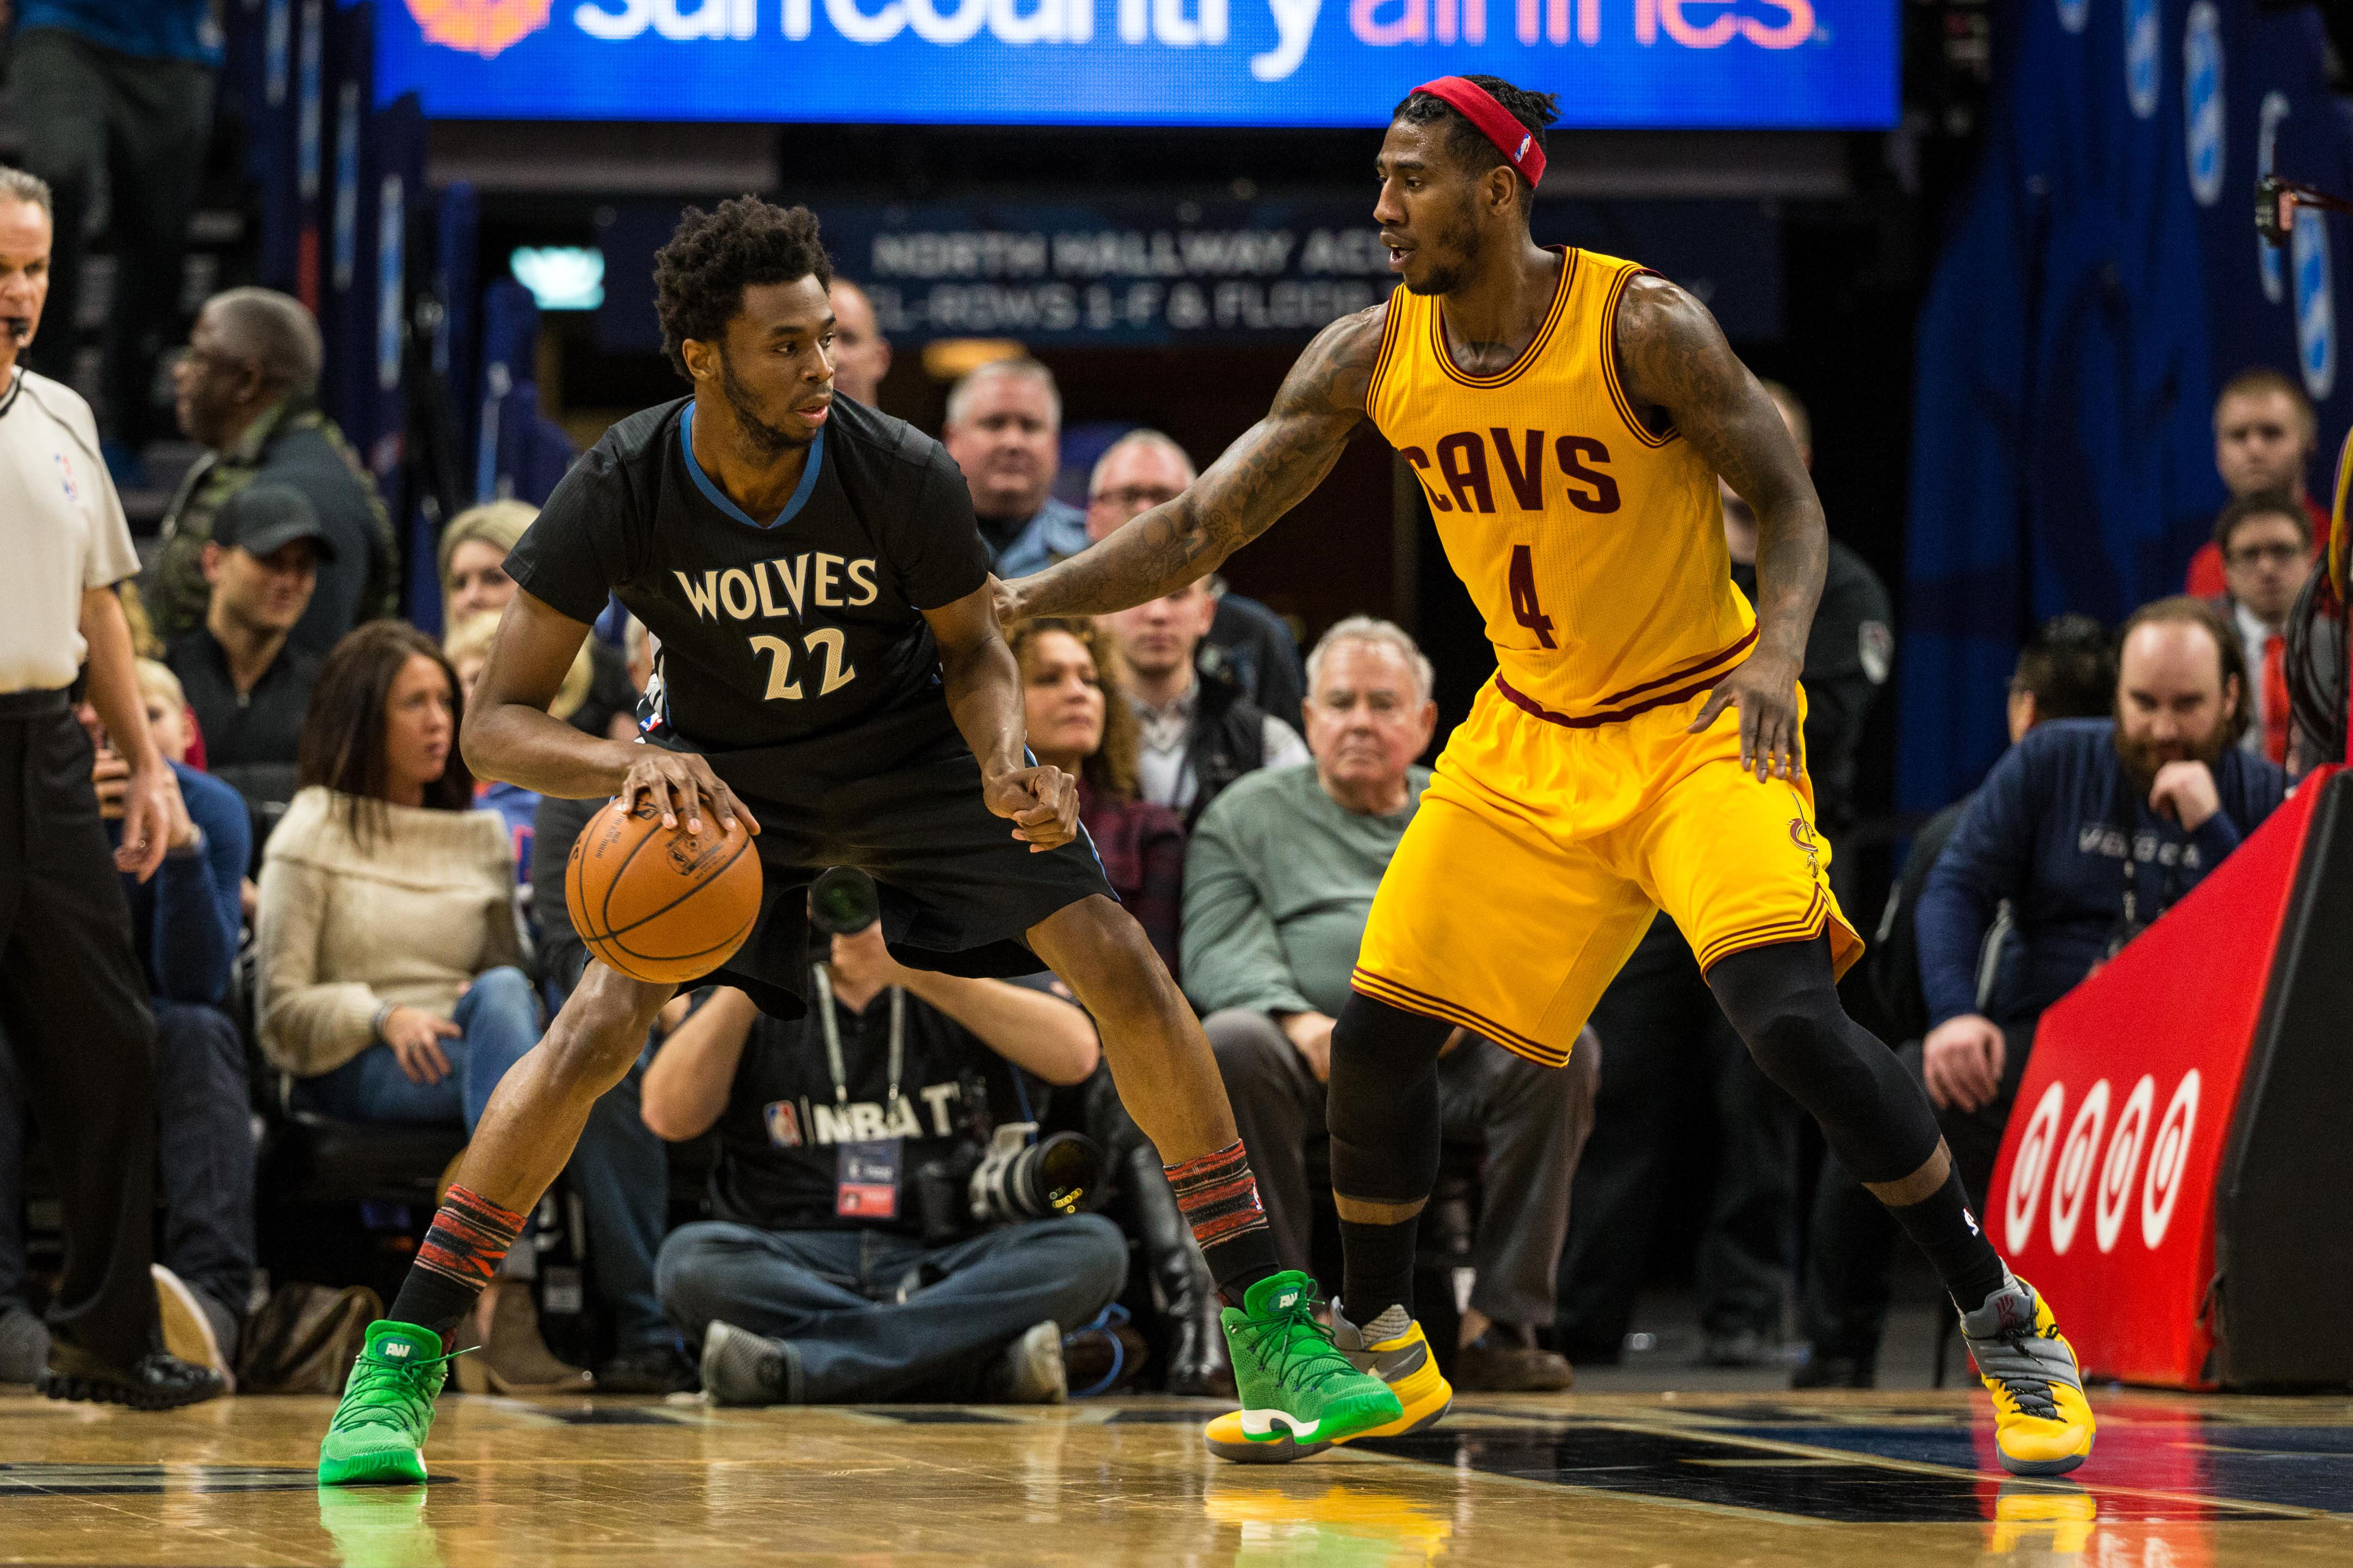 9878093-nba-cleveland-cavaliers-at-minnesota-timberwolves-1